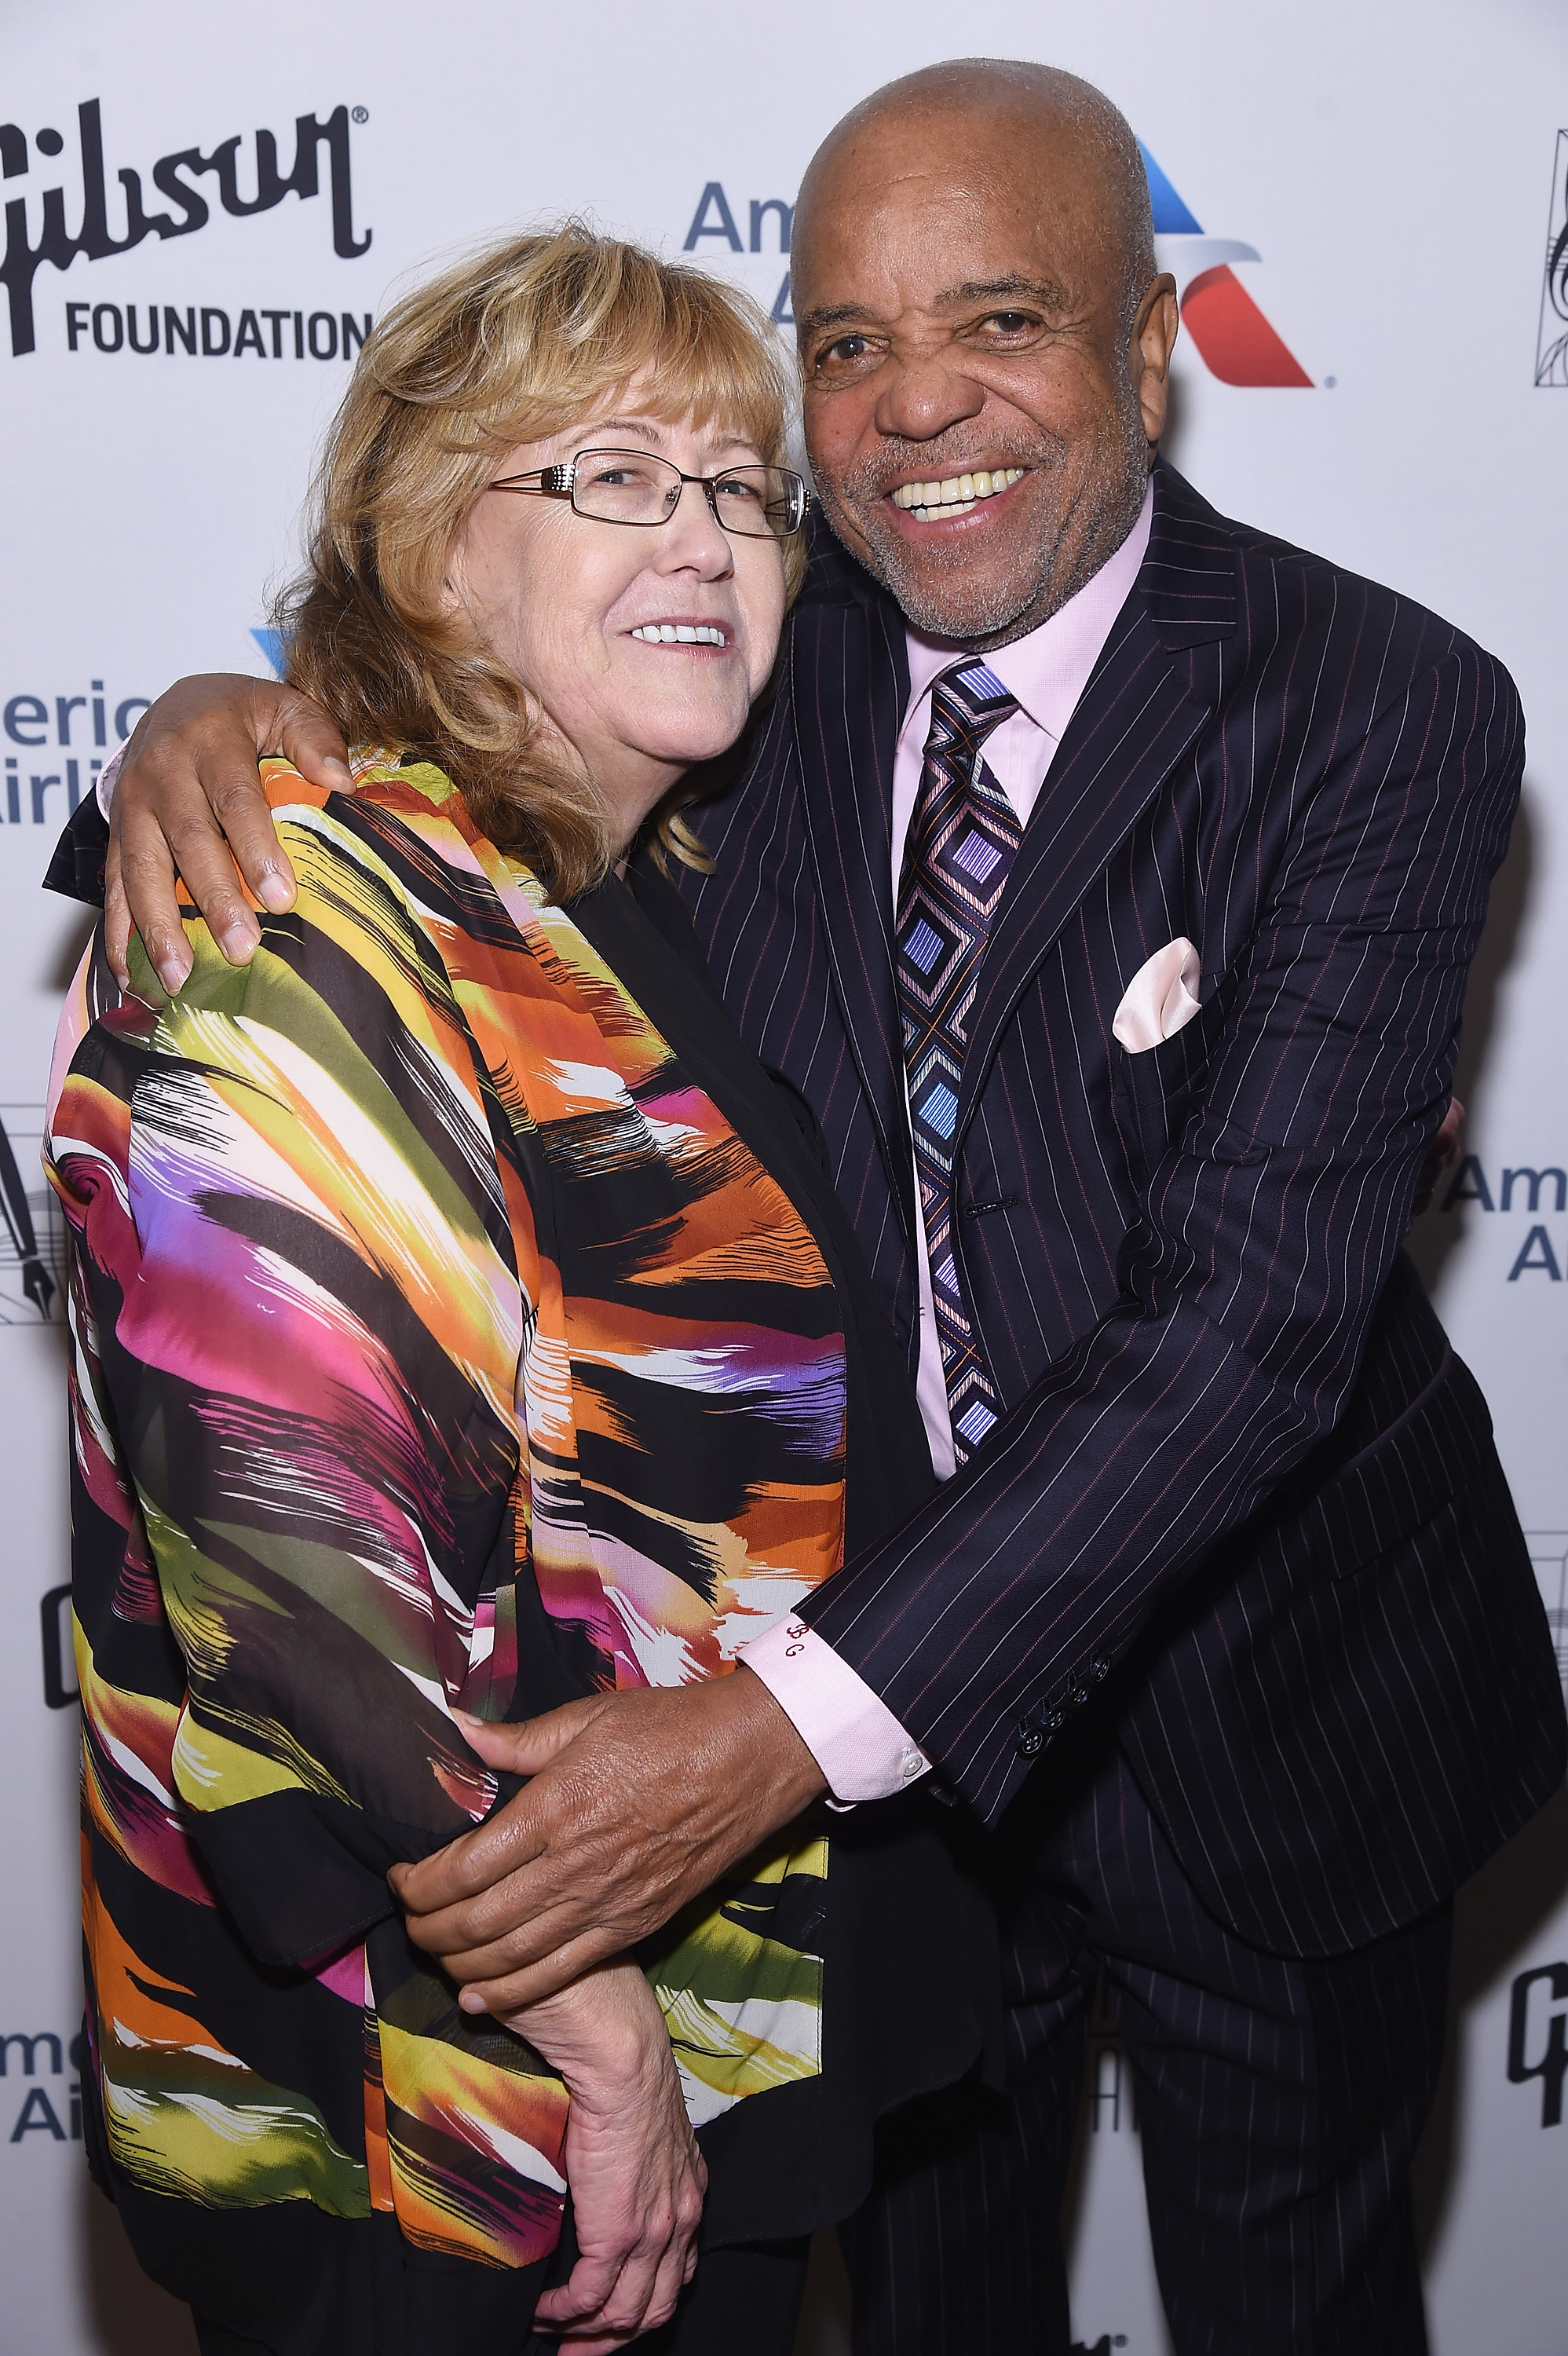 NEW YORK, NY - JUNE 15: Linda Moran and 2017 Inductee Berry Gordy pose backstage at the Songwriters Hall Of Fame 48th Annual Induction and Awards at New York Marriott Marquis Hotel on June 15, 2017 in New York City.  (Photo by Gary Gershoff/Getty Images for Songwriters Hall Of Fame) *** Local Caption *** Linda Moran; Berry Gordy